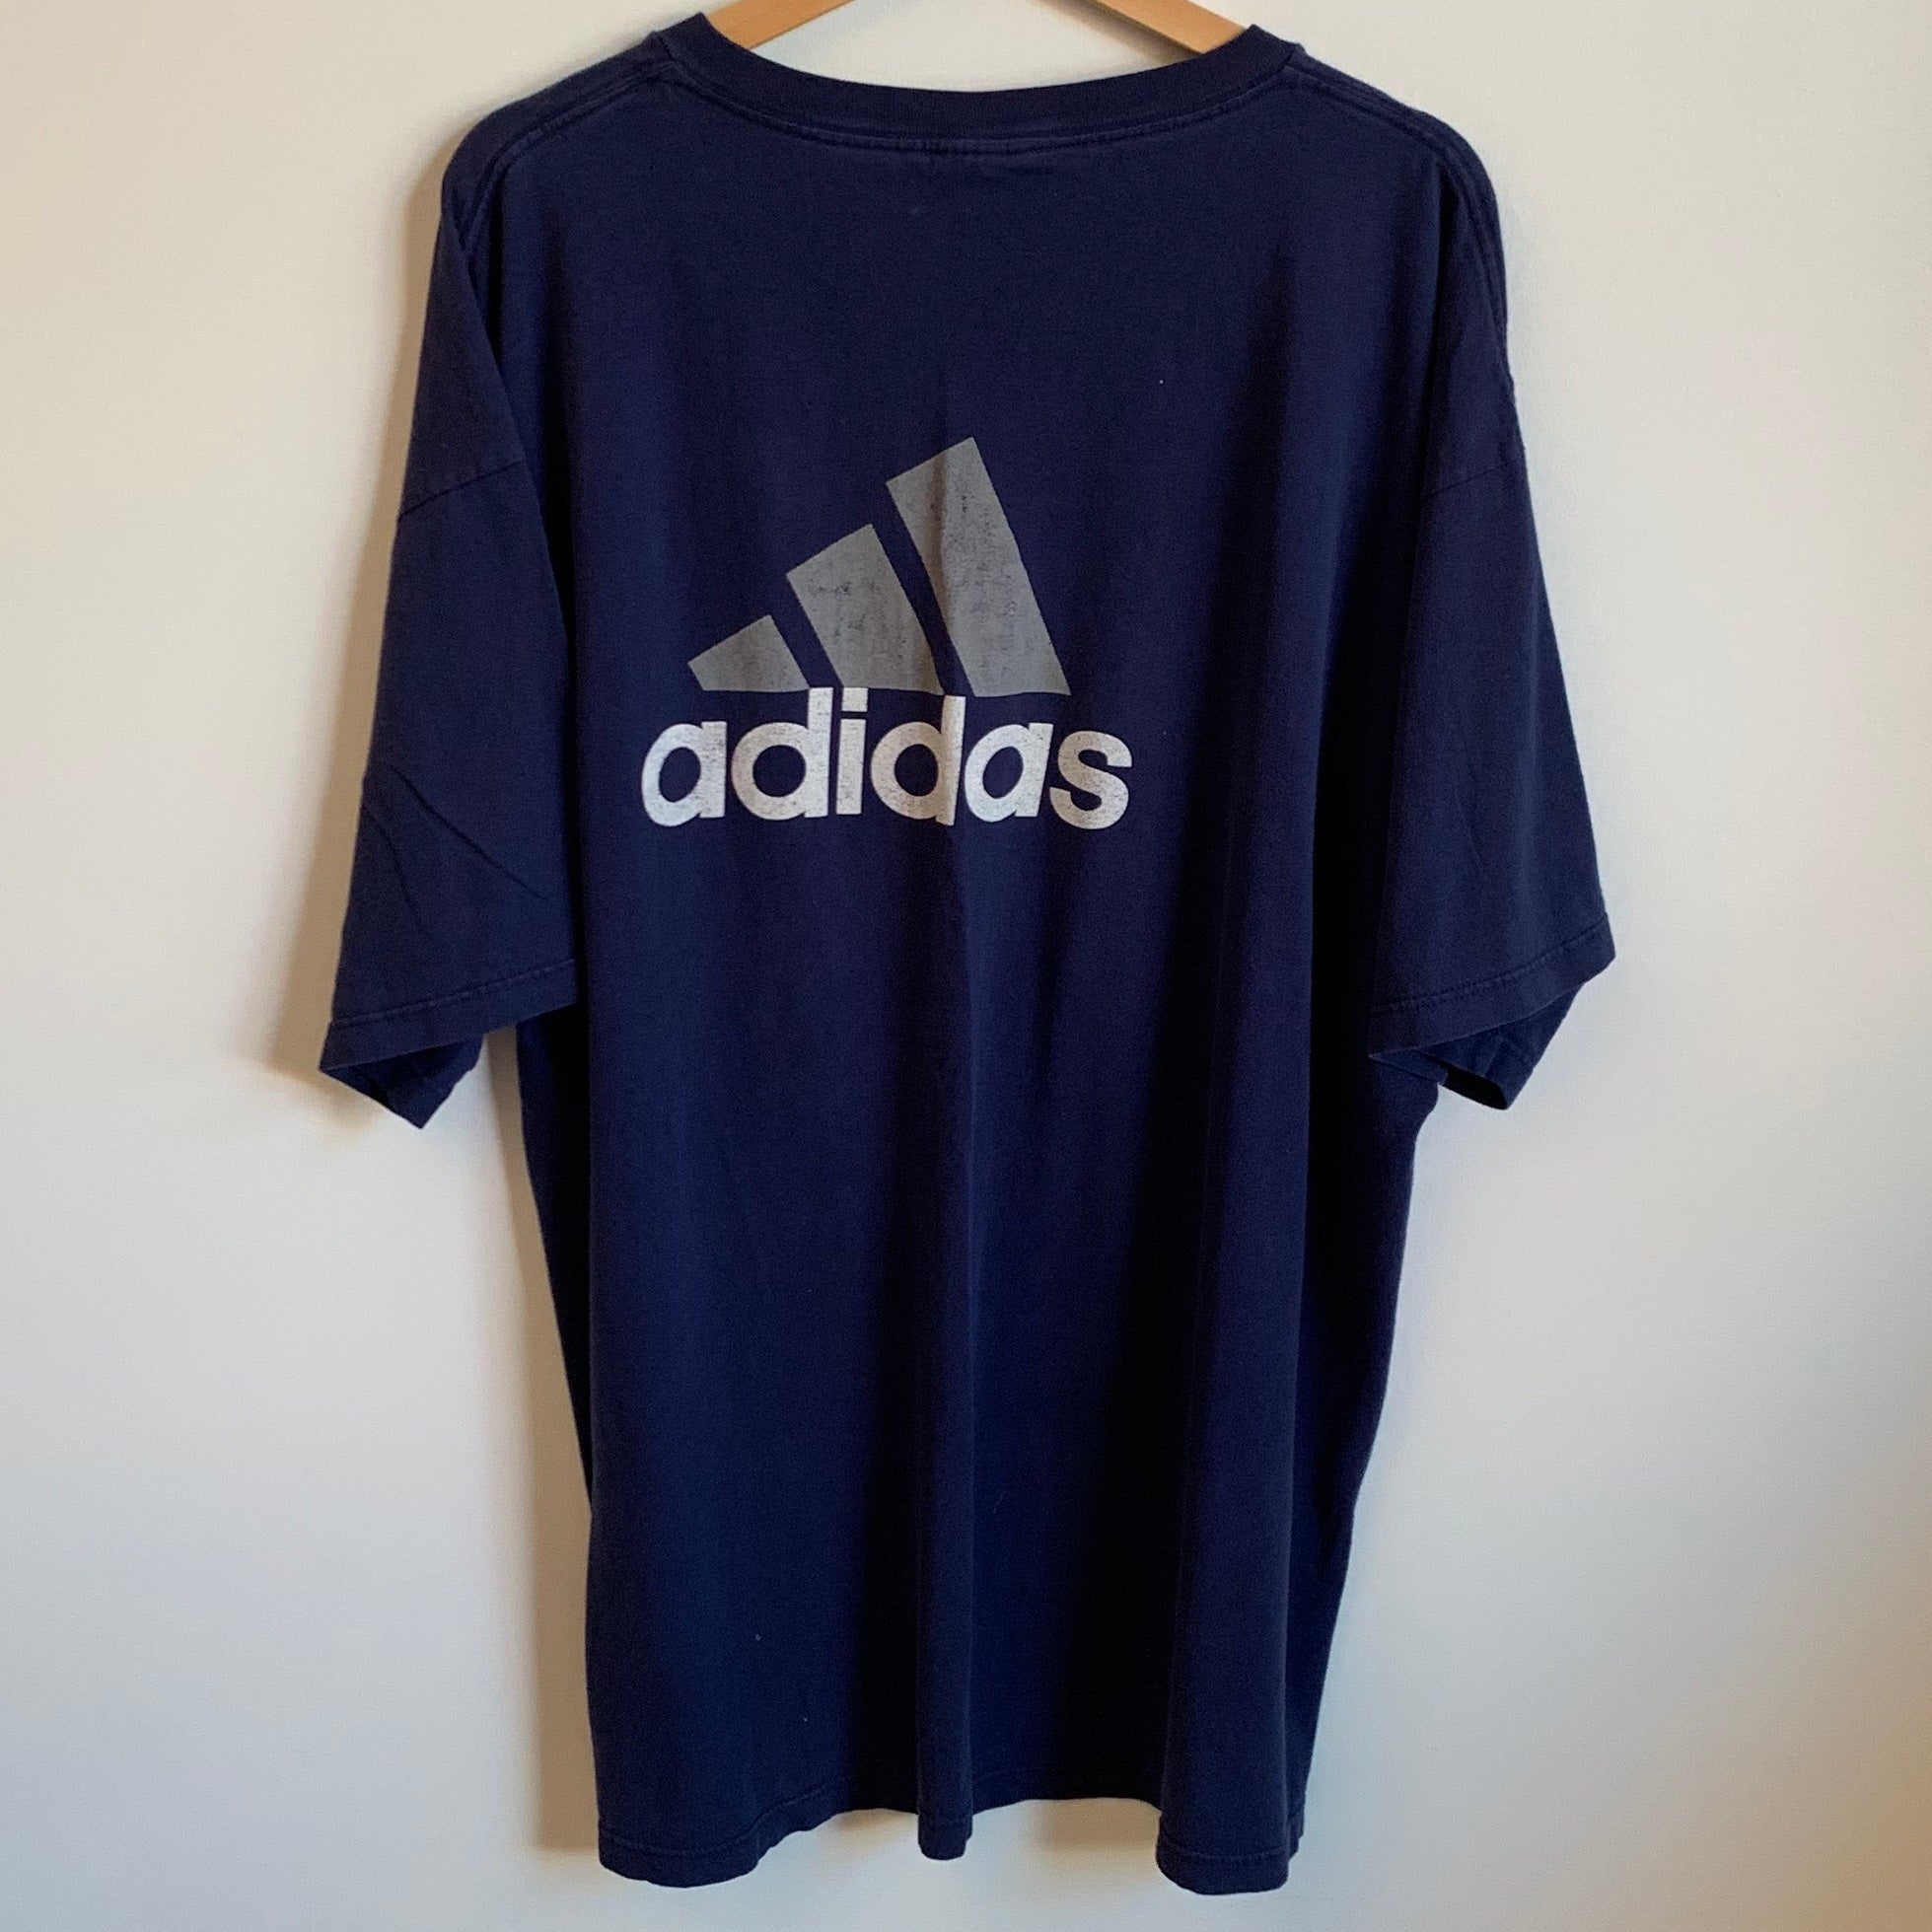 Adidas Big Logo Navy Pocket Tee Shirt